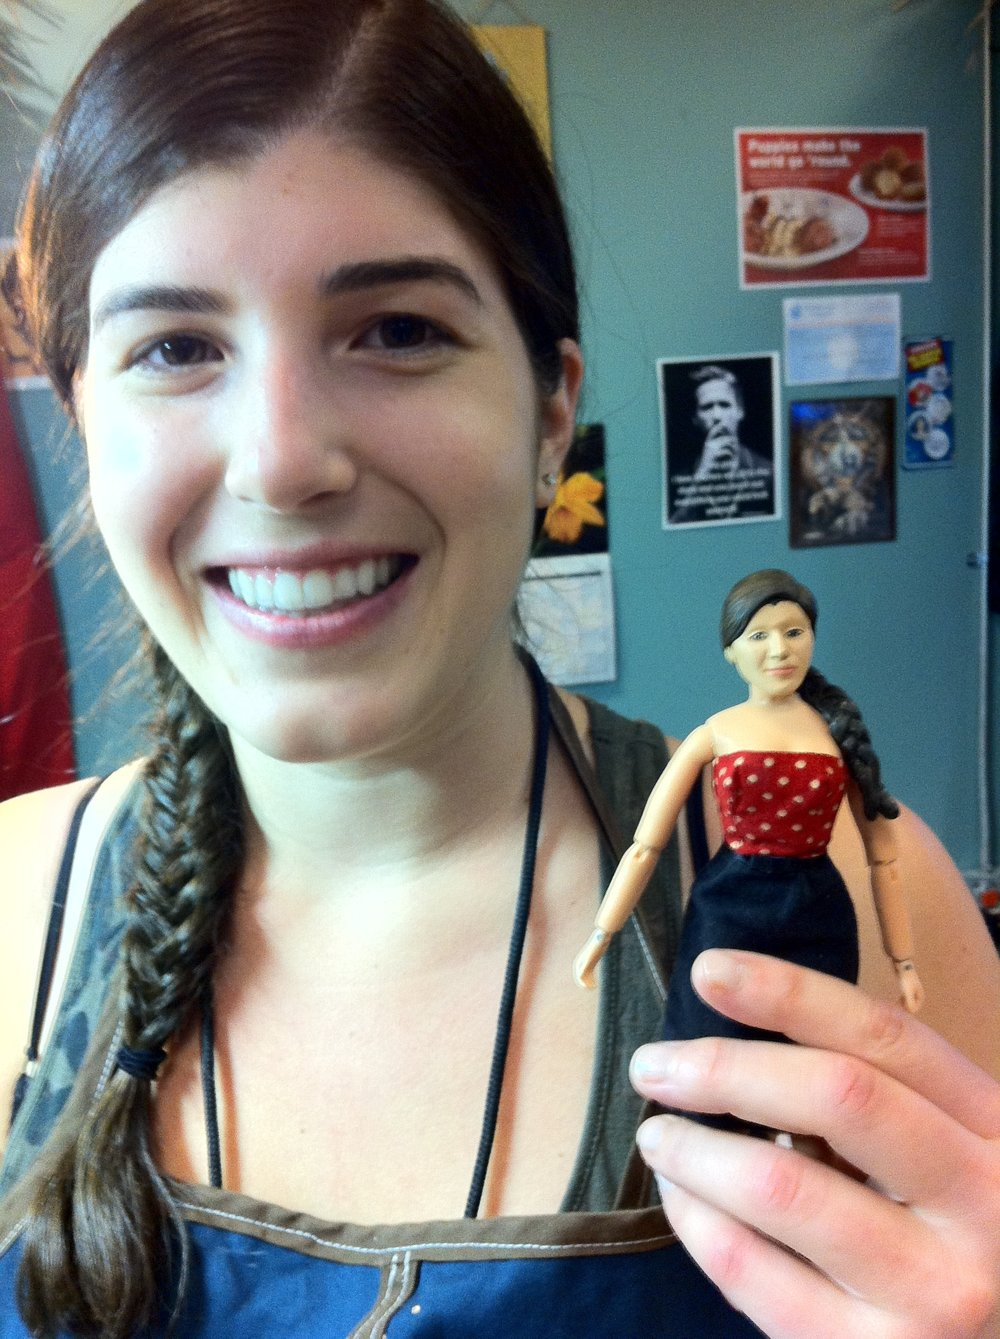 Me and my  Robot Chicken  puppet doppelgänger circa 2012